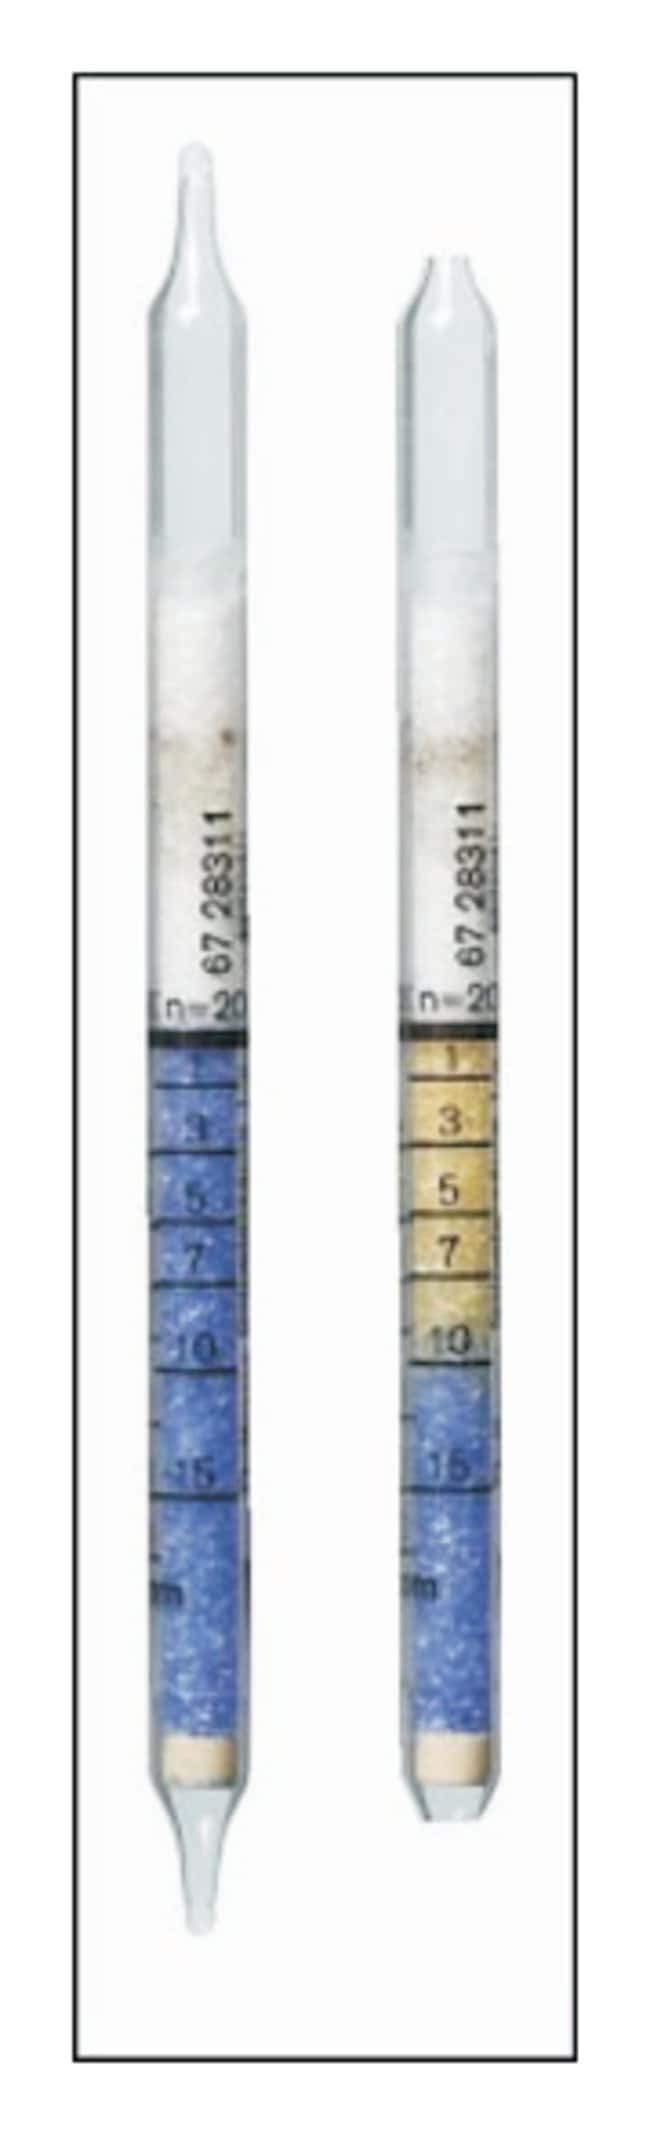 Dräger™ Short-Term Detector Tubes - Nitric Acid Nitric Acid 1/a; Measuring range: 1 to 50ppm Gas Detection Tubes